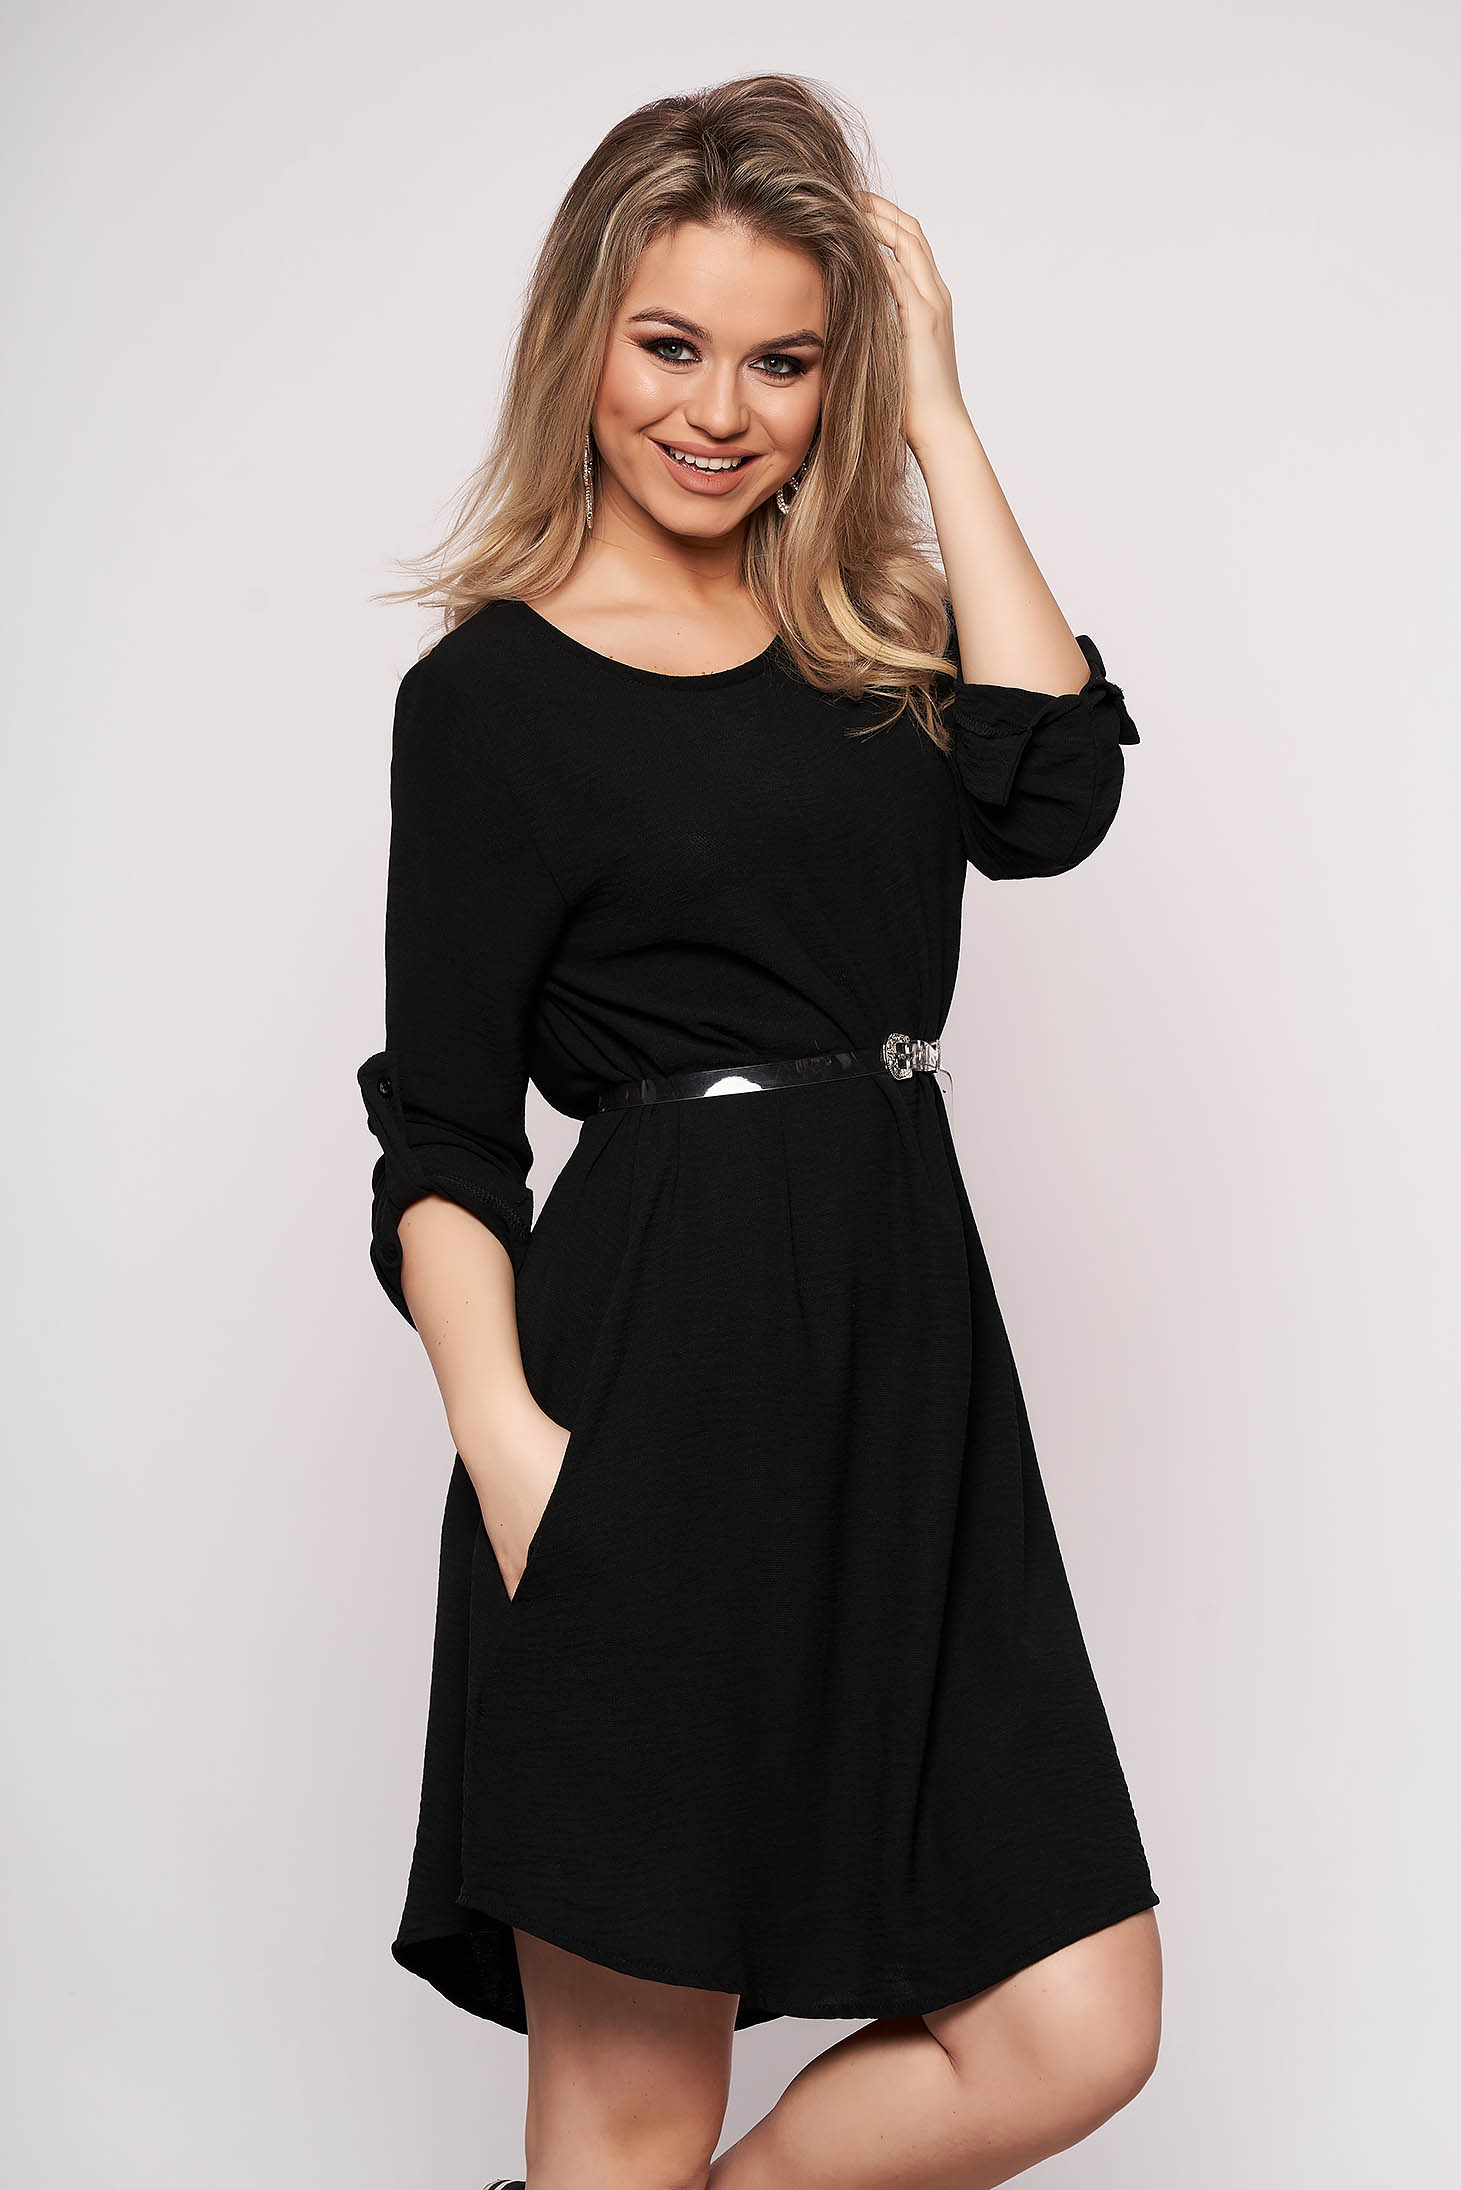 Black dress accessorized with belt flared asymmetrical casual with 3/4 sleeves